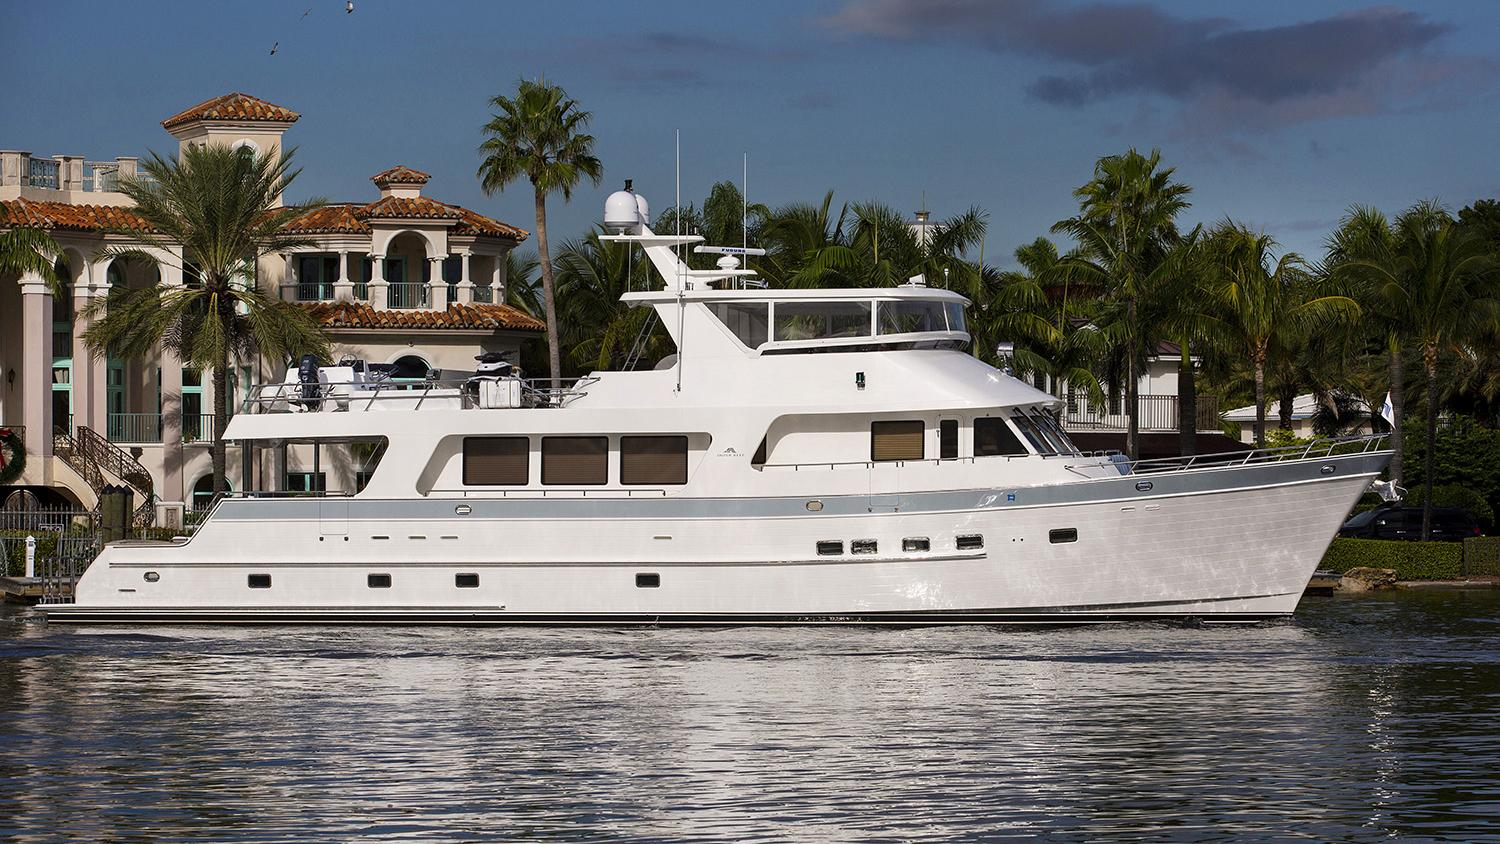 ti punch motoryacht outer reef yachts 2013 26m profile